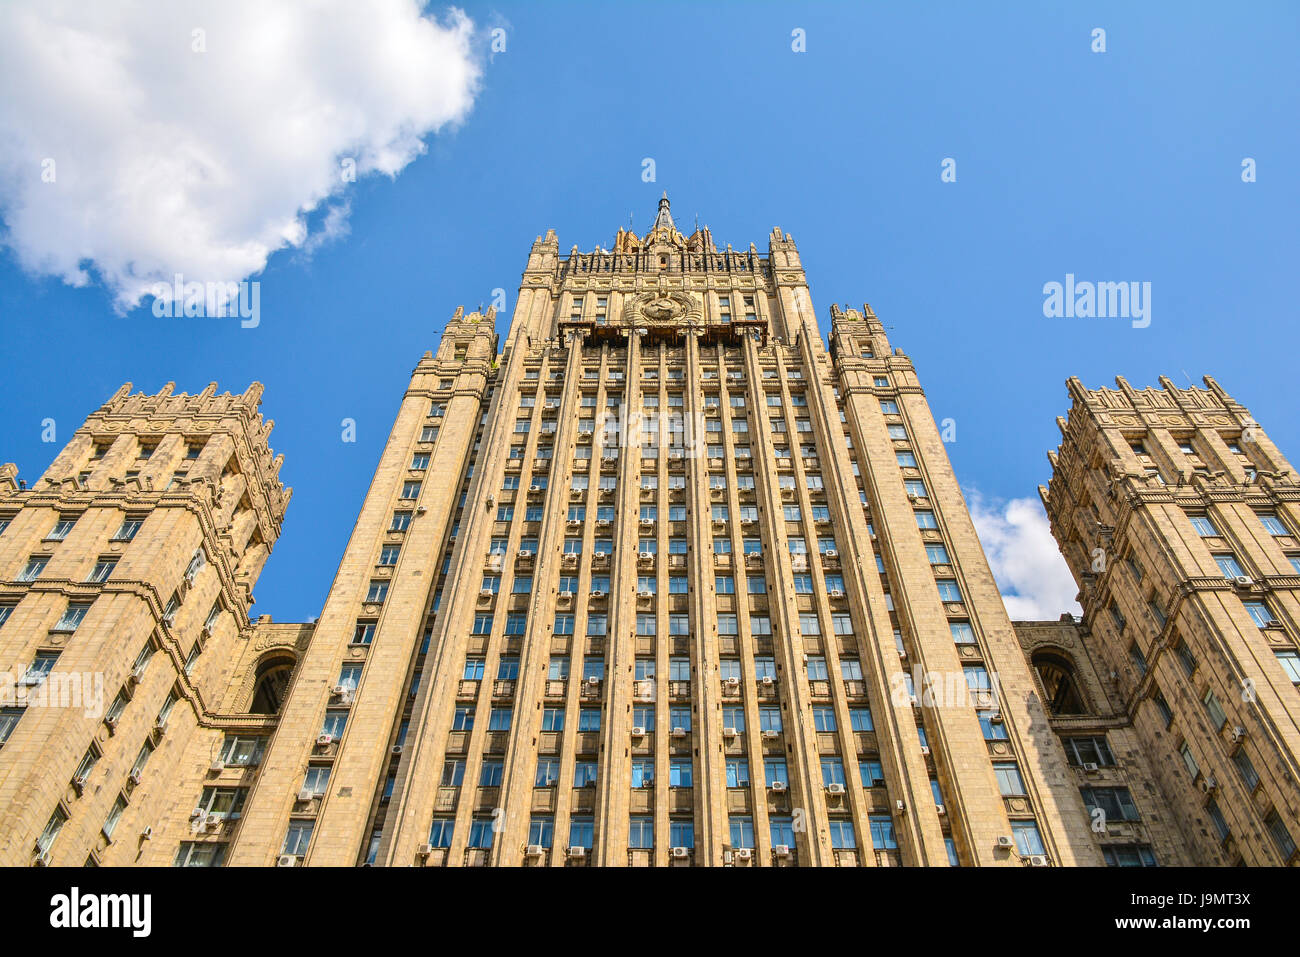 Ministry of Foreign Affairs of the Russian Federation building - Stock Image